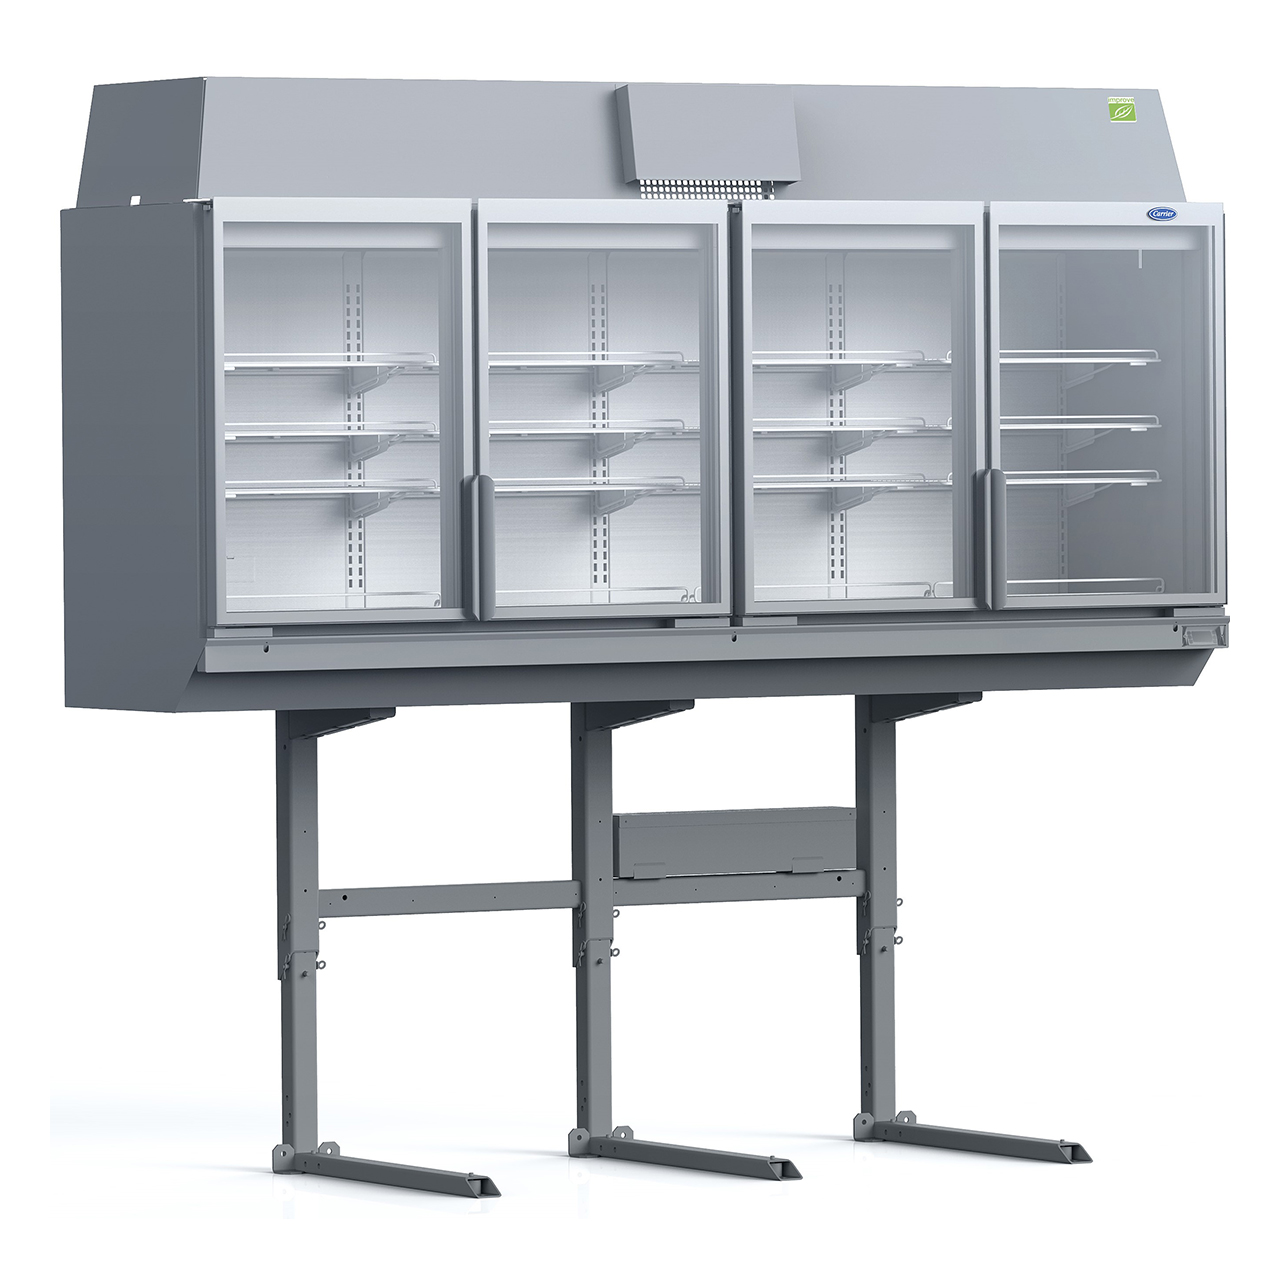 vertical-freezer-top-freezer-A